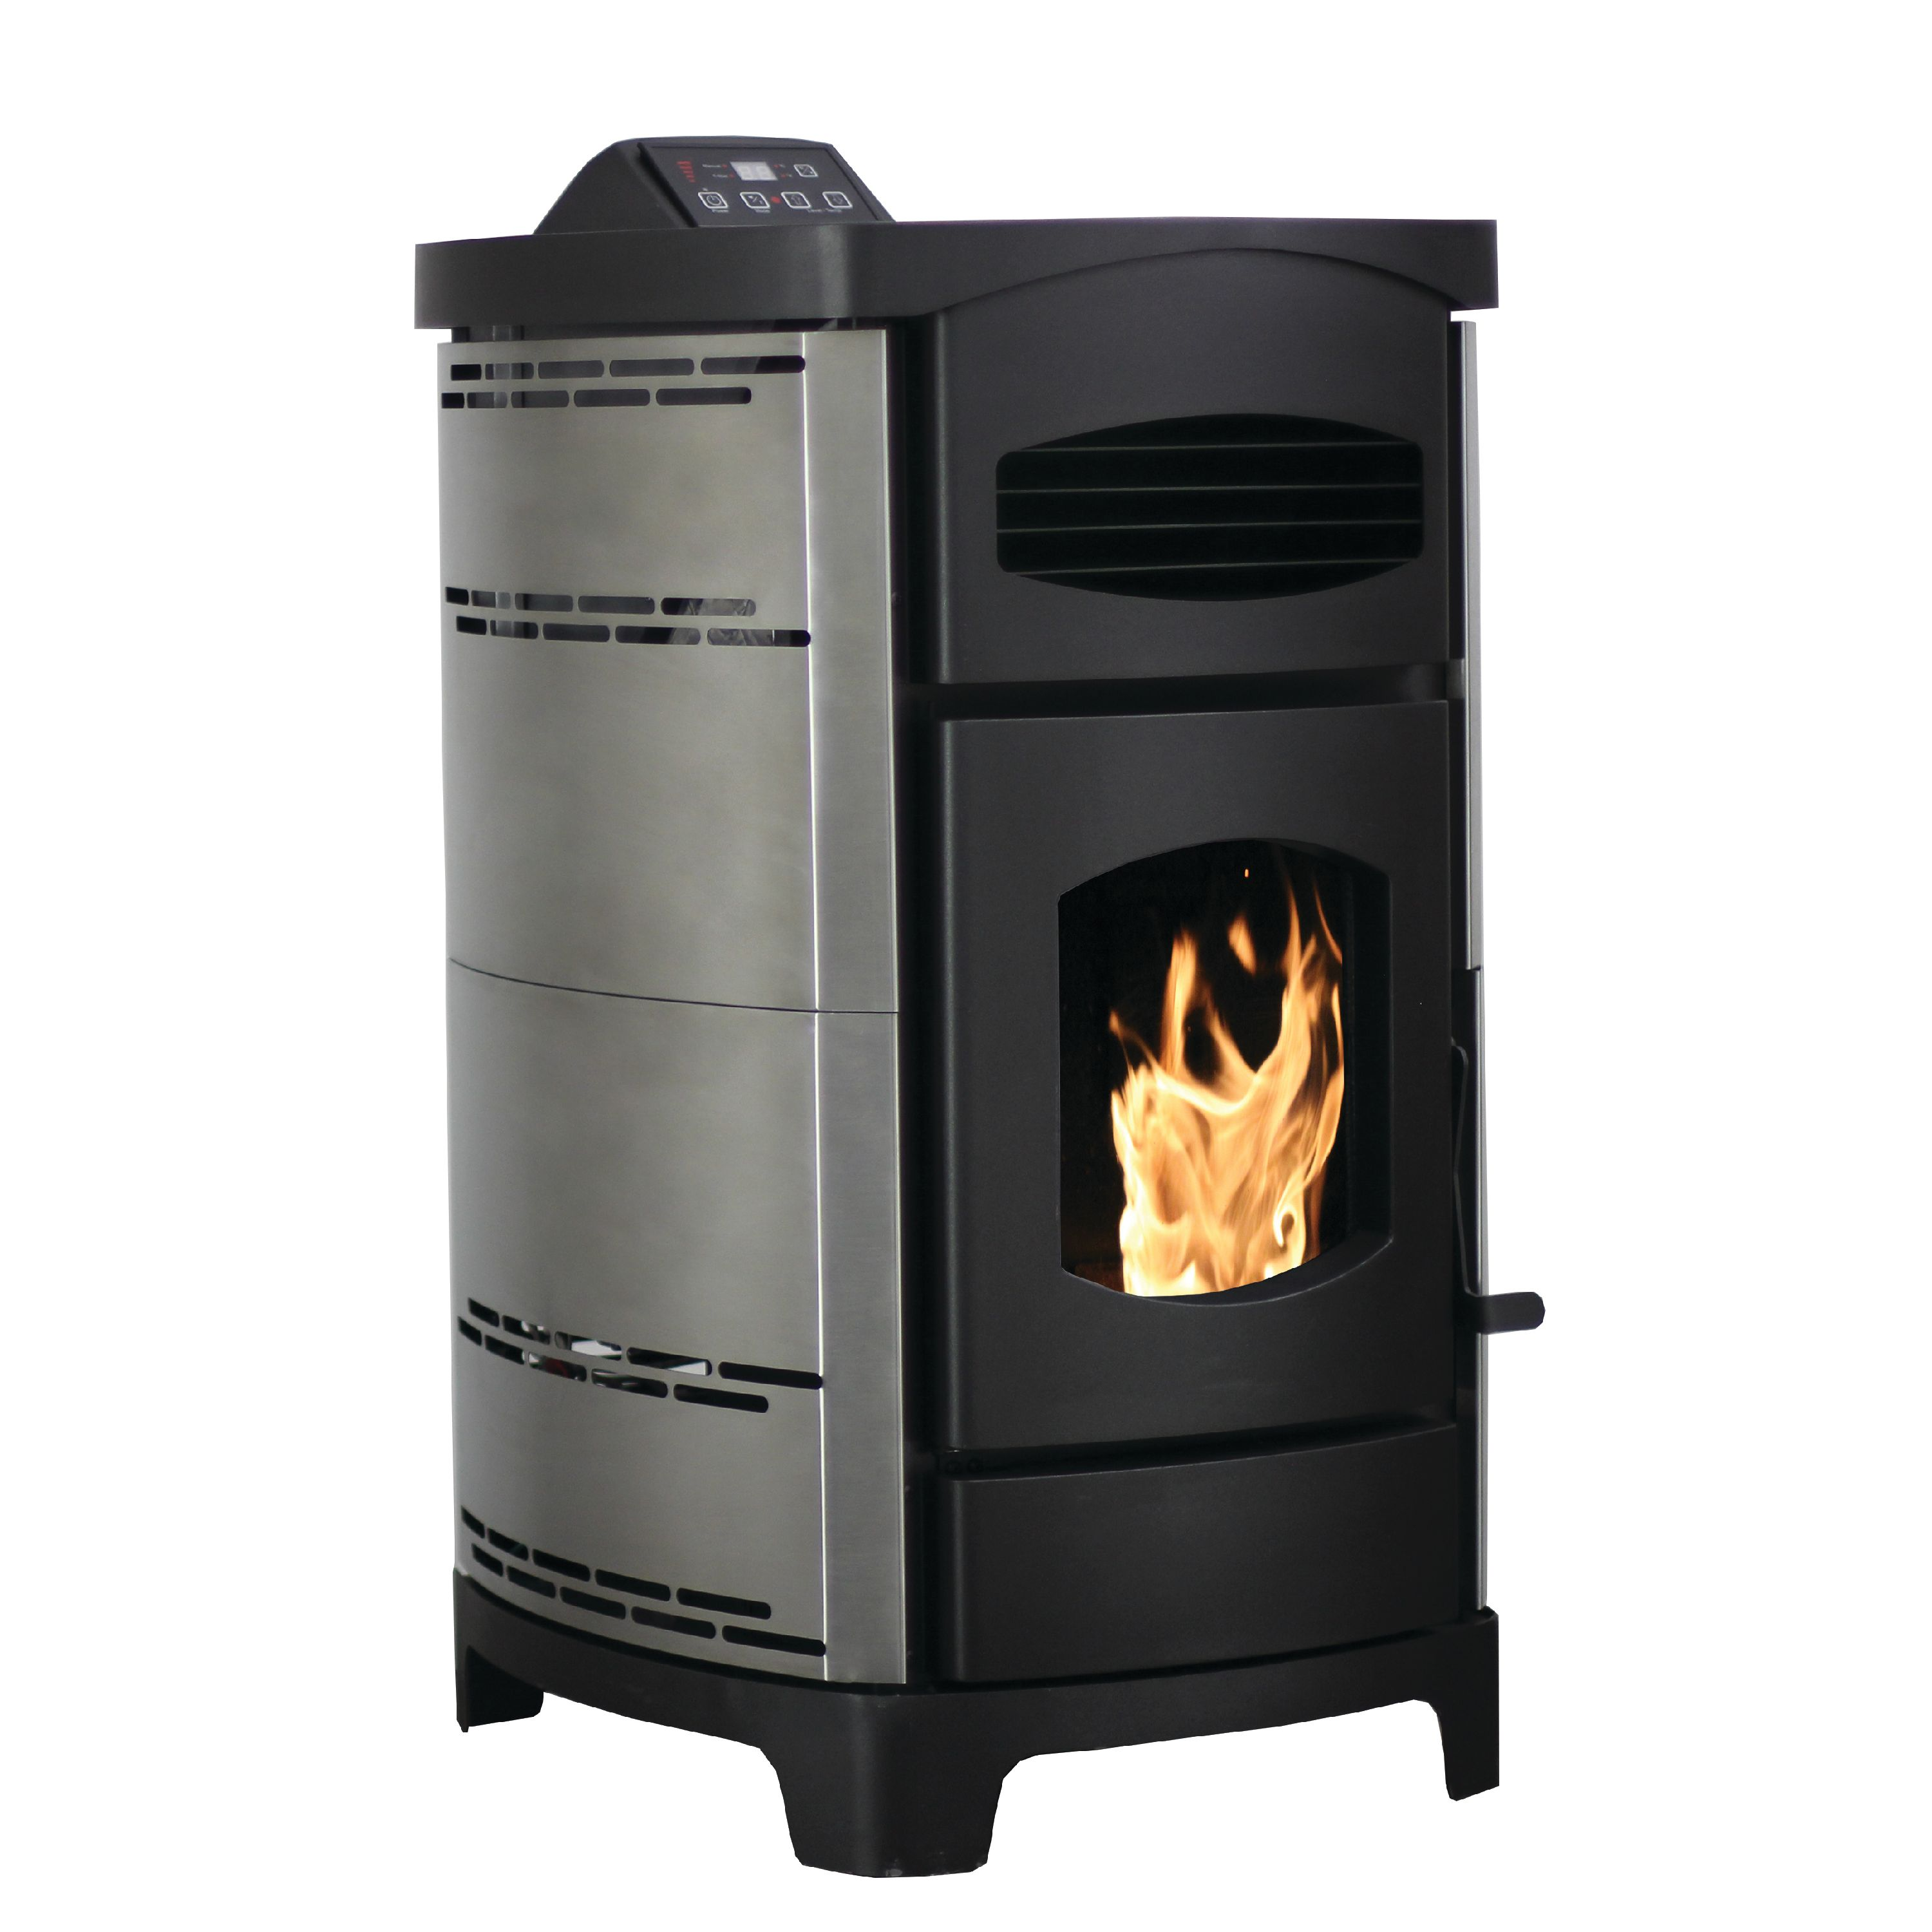 Ashley 2,200 Sq. Ft EPA certified Pellet stove with Brushed Stainless Steel Curved sides